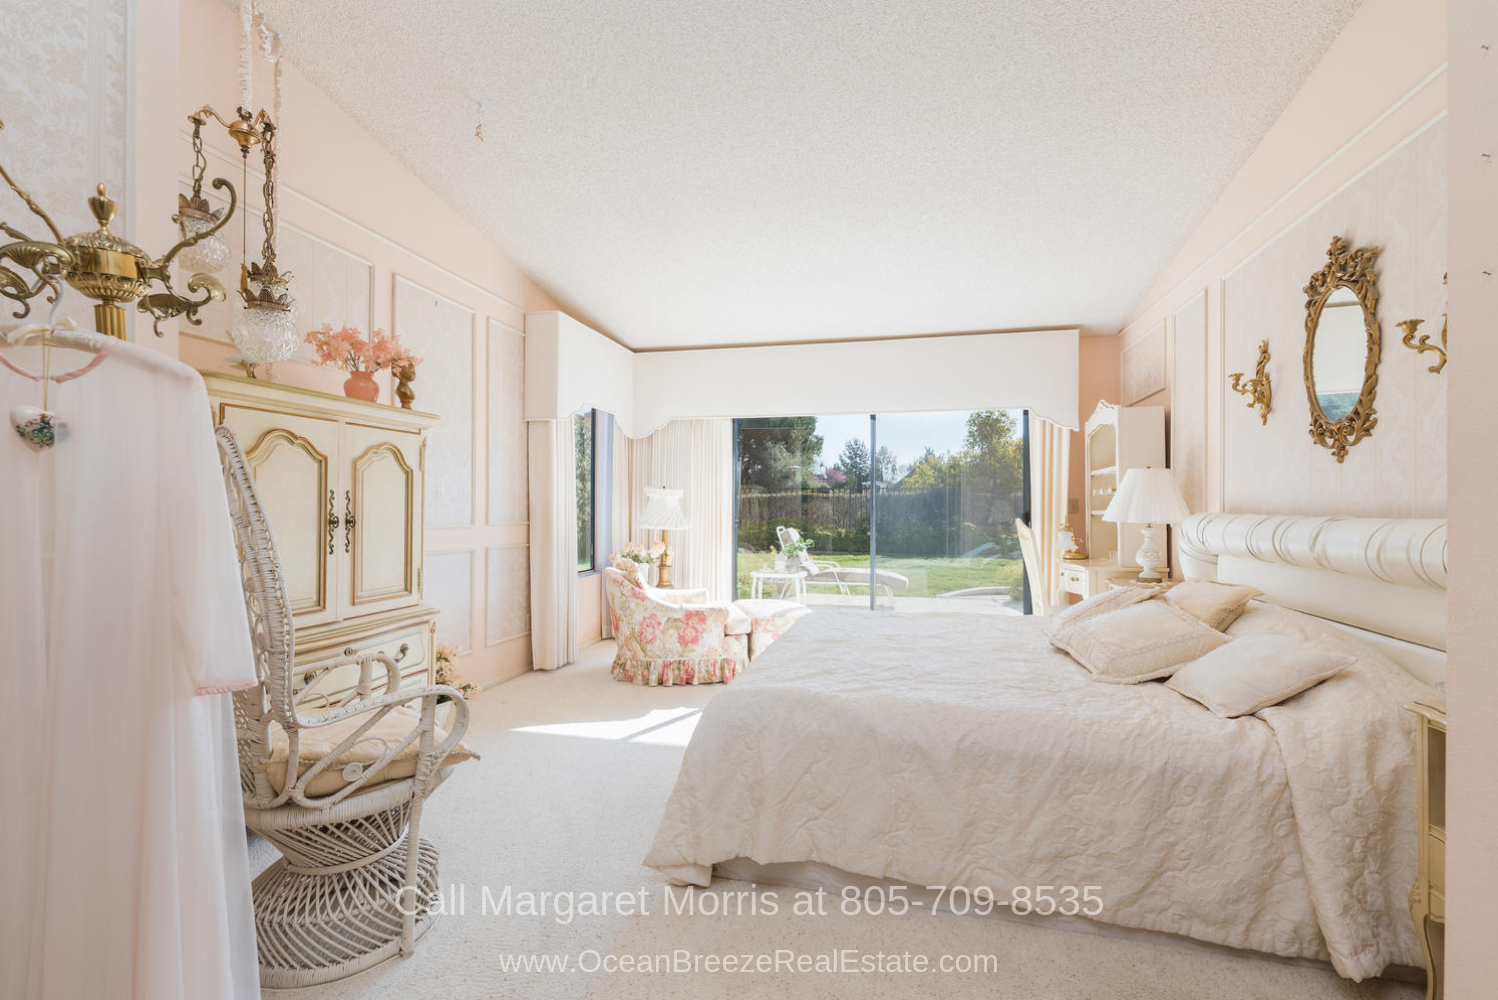 Crown Pointe Subdivision Nipomo CA  Golf Homes - Enjoy the best rest and privacy in the large master bedroom of this Nipomo golf course home for sale